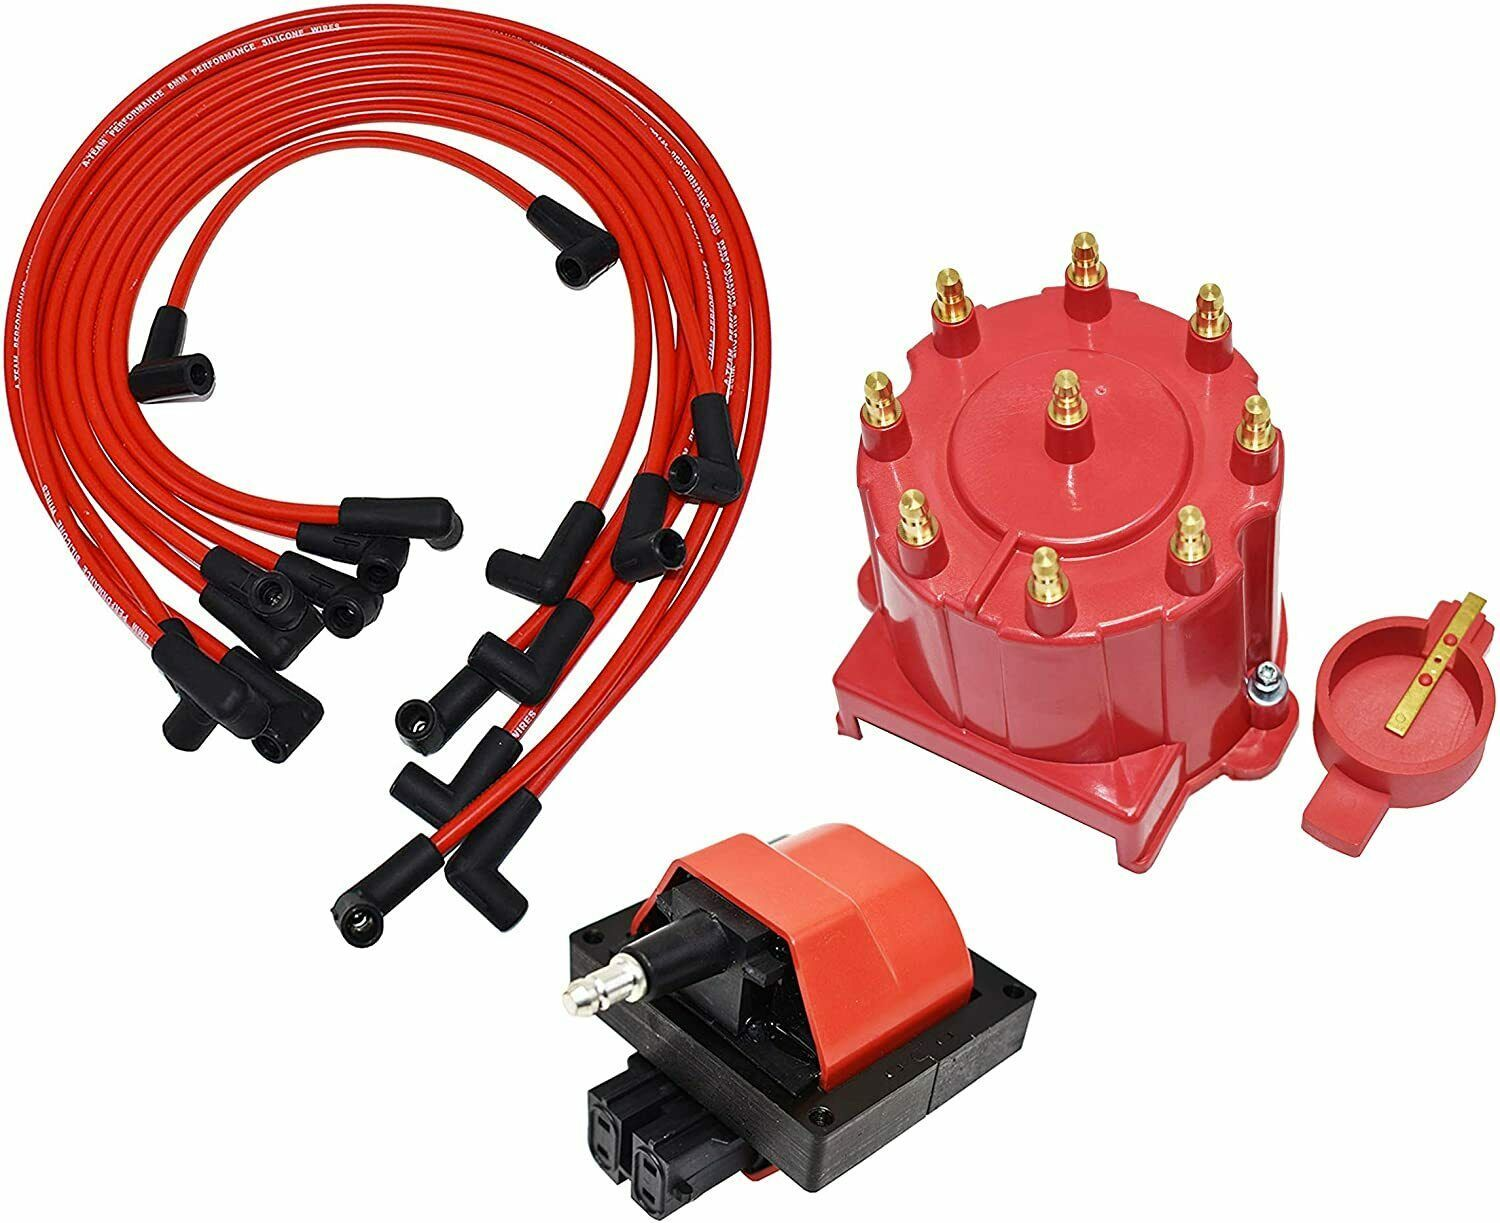 87-94 Chevy GM 305 350 454 EFI Distributor Tune Up Kit, & 8.0mm Spark Plug Wires